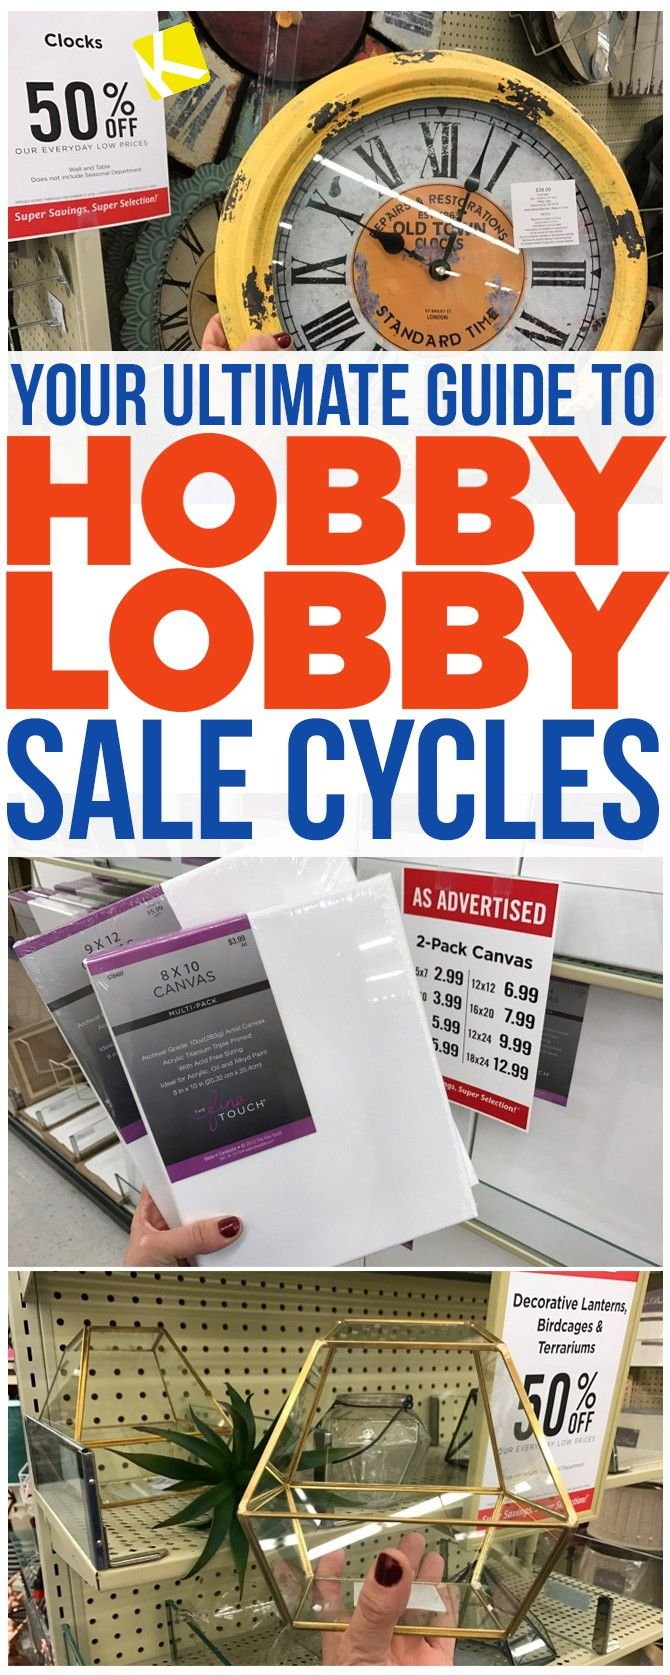 How To Know When Every Item At Hobby Lobby Goes On Sale | Store Calendar 2019 Hobby Lobby